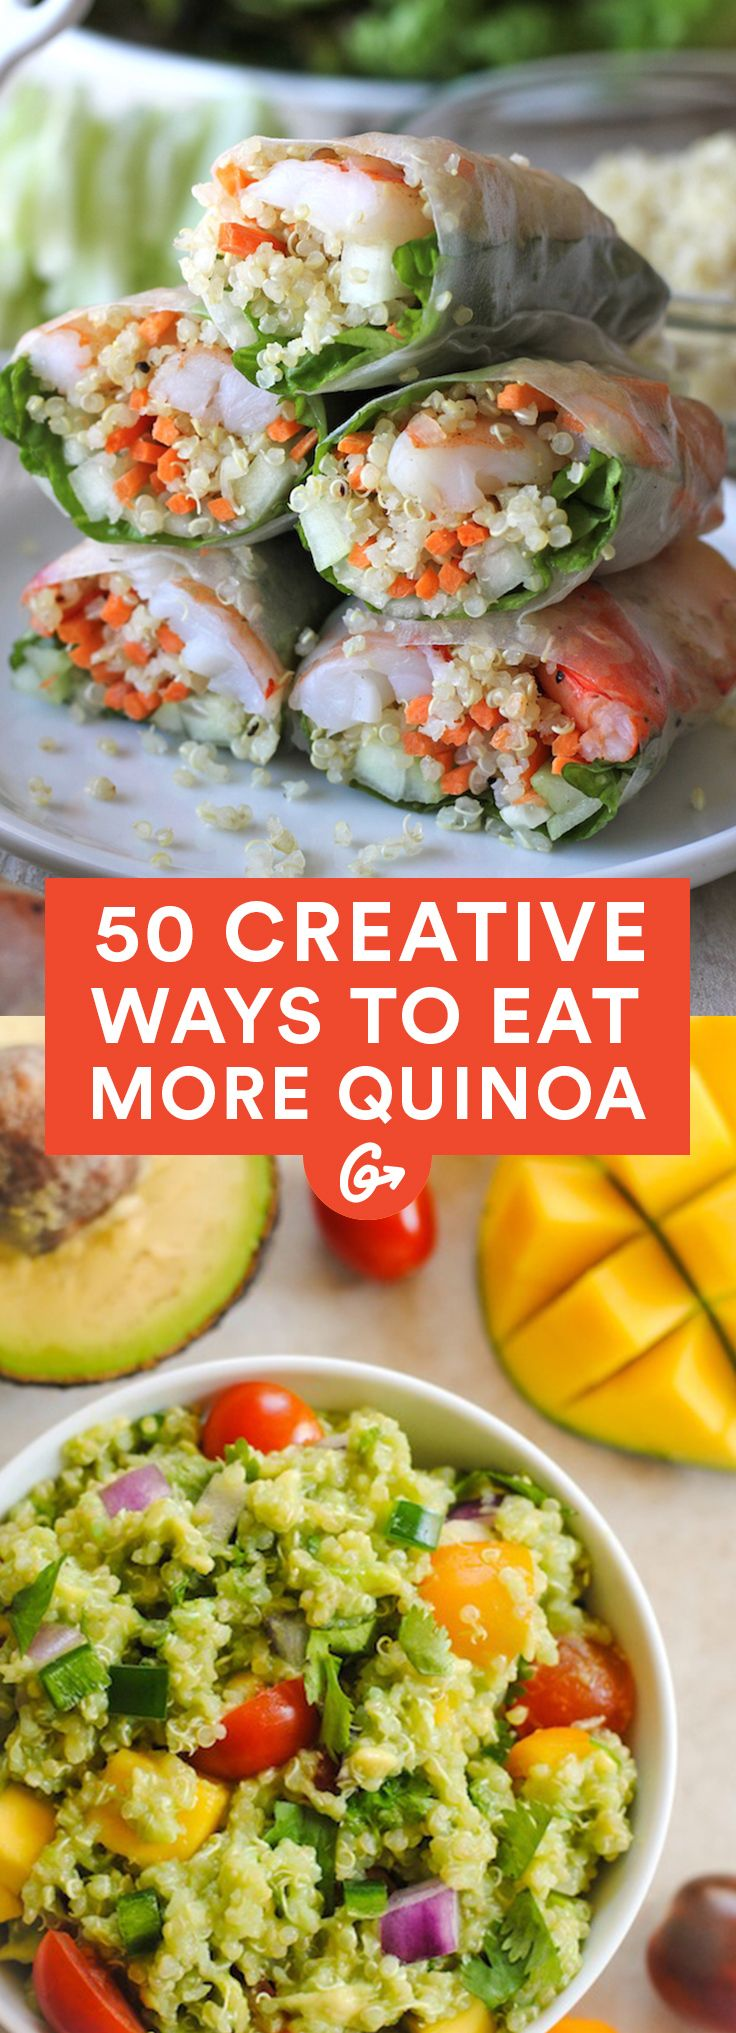 It may no longer be the international year of quinoa, but it's safe to say that quinoa mania is here to stay #creative #quinoa #recipes http://greatist.com/eat/creative-ways-to-eat-quinoa                                                                                                                                                                                 Más